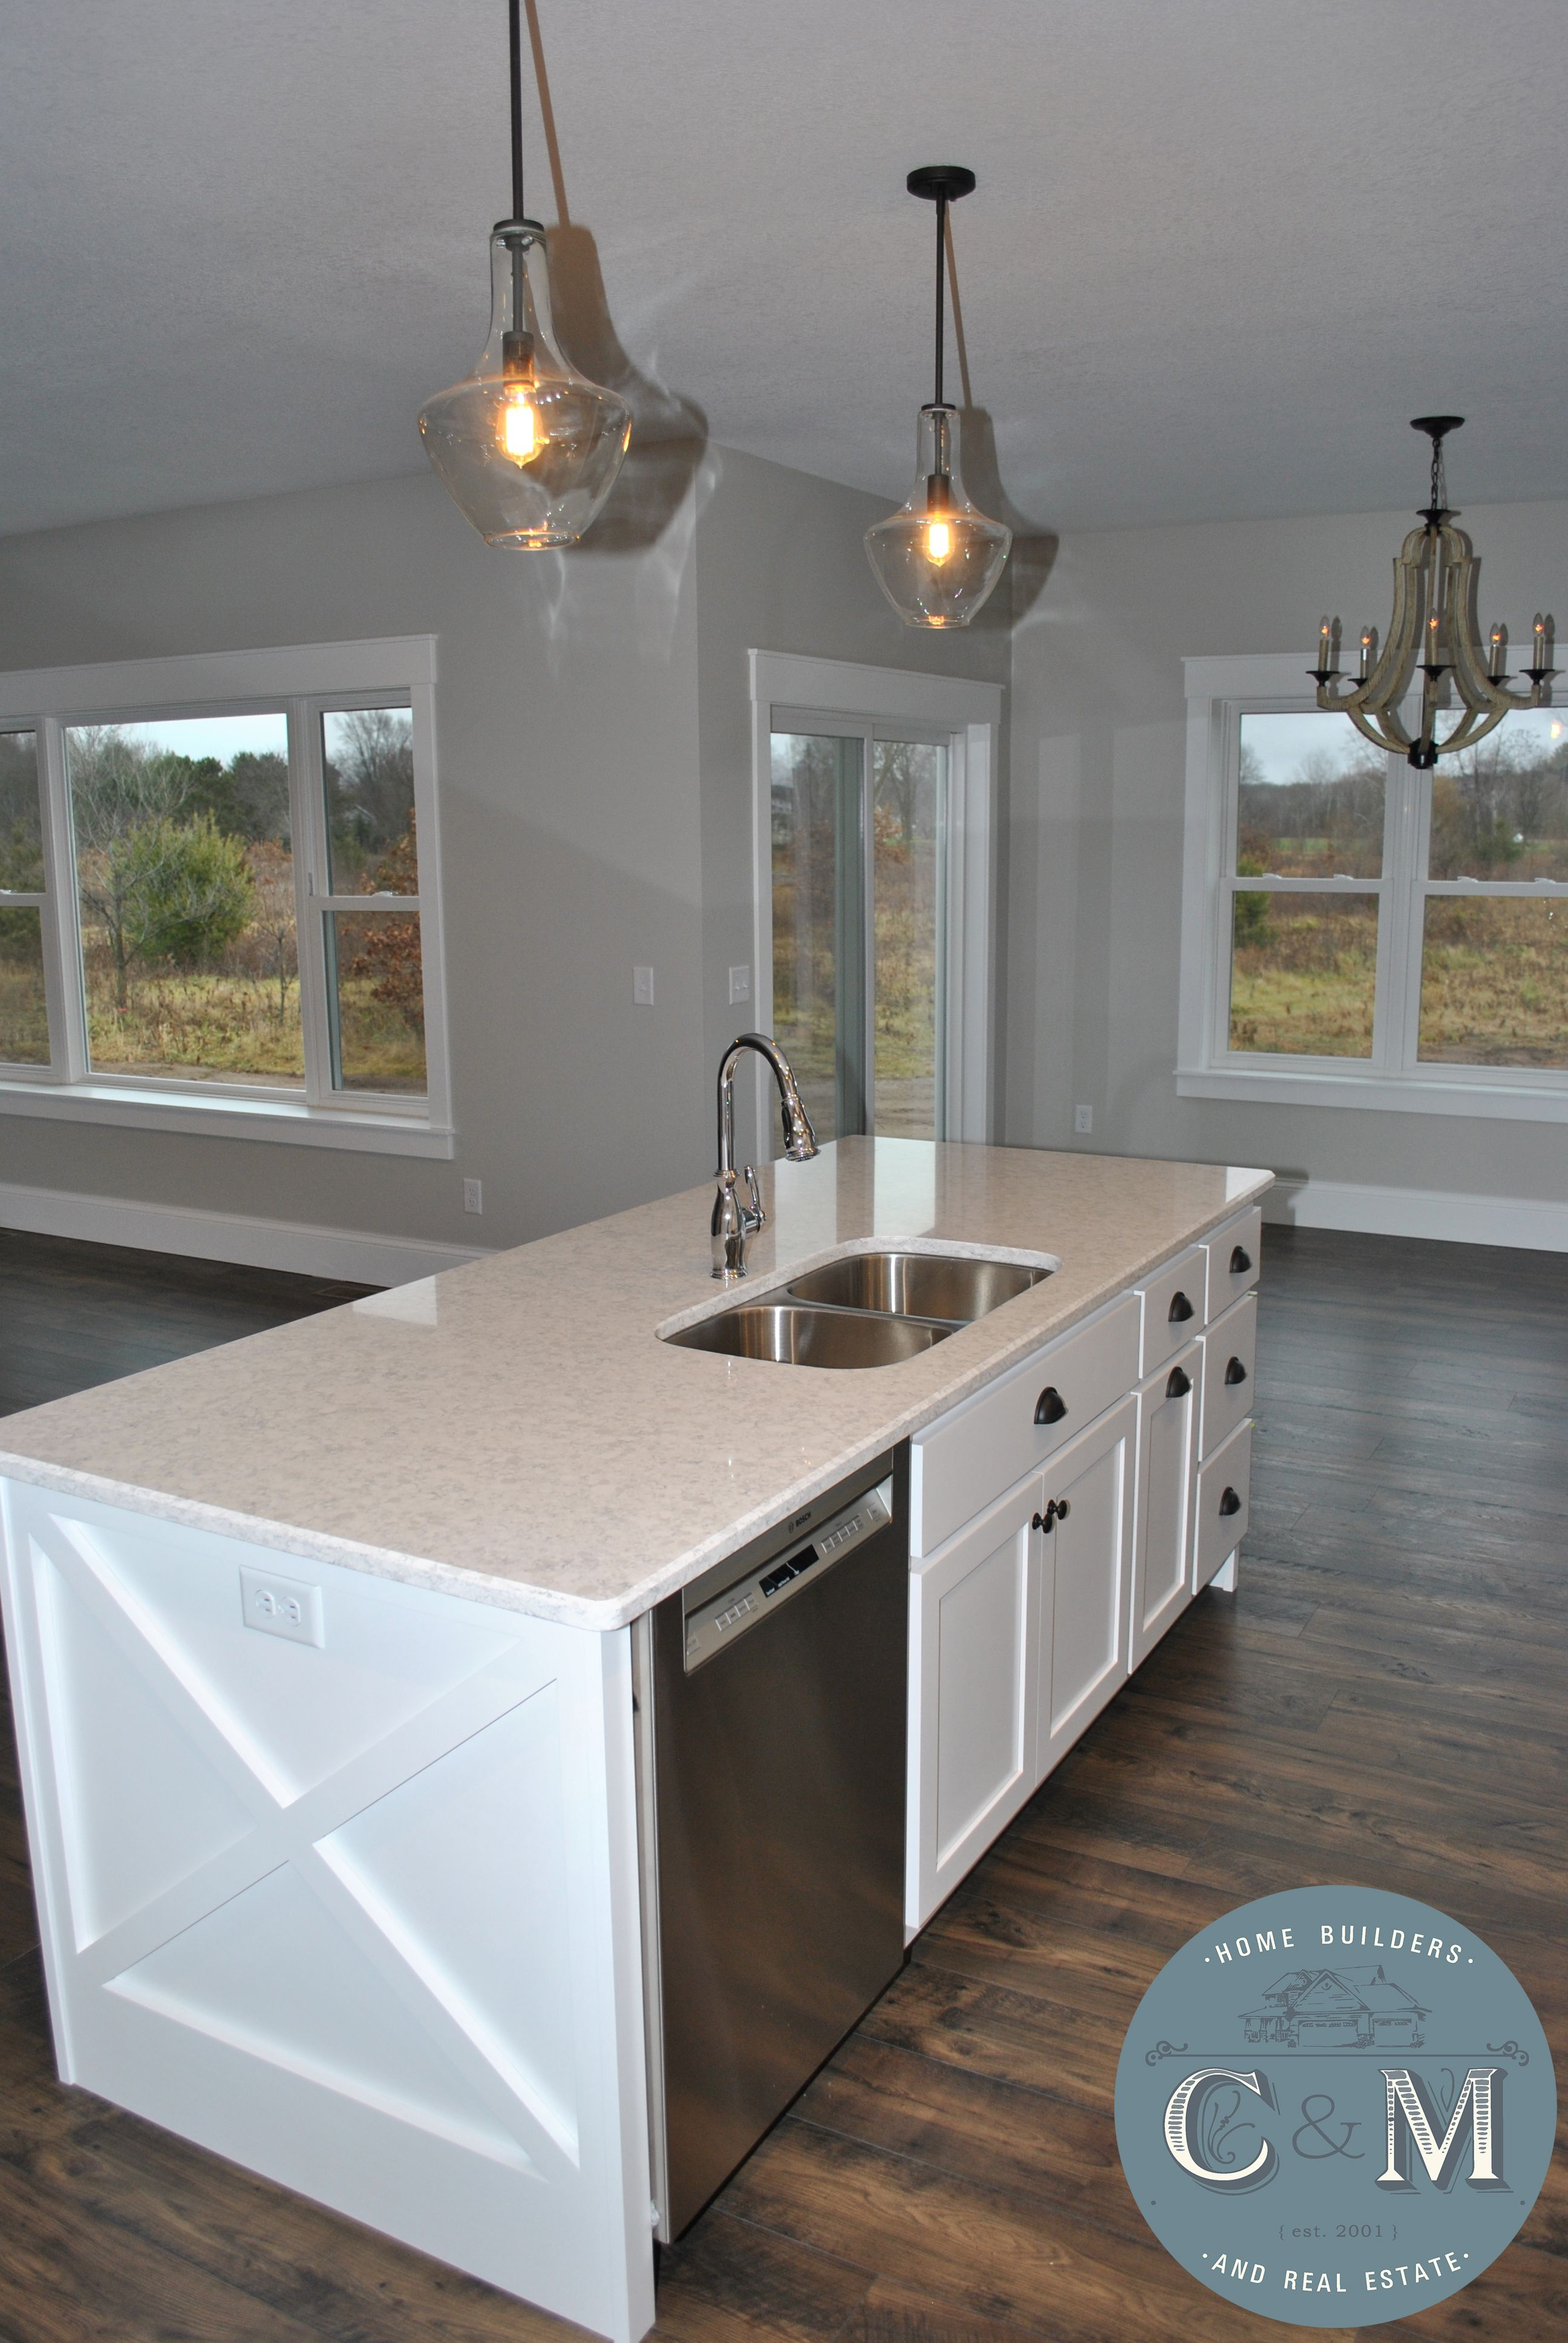 farmhouse style kitchen island | c&m home builders and real estate